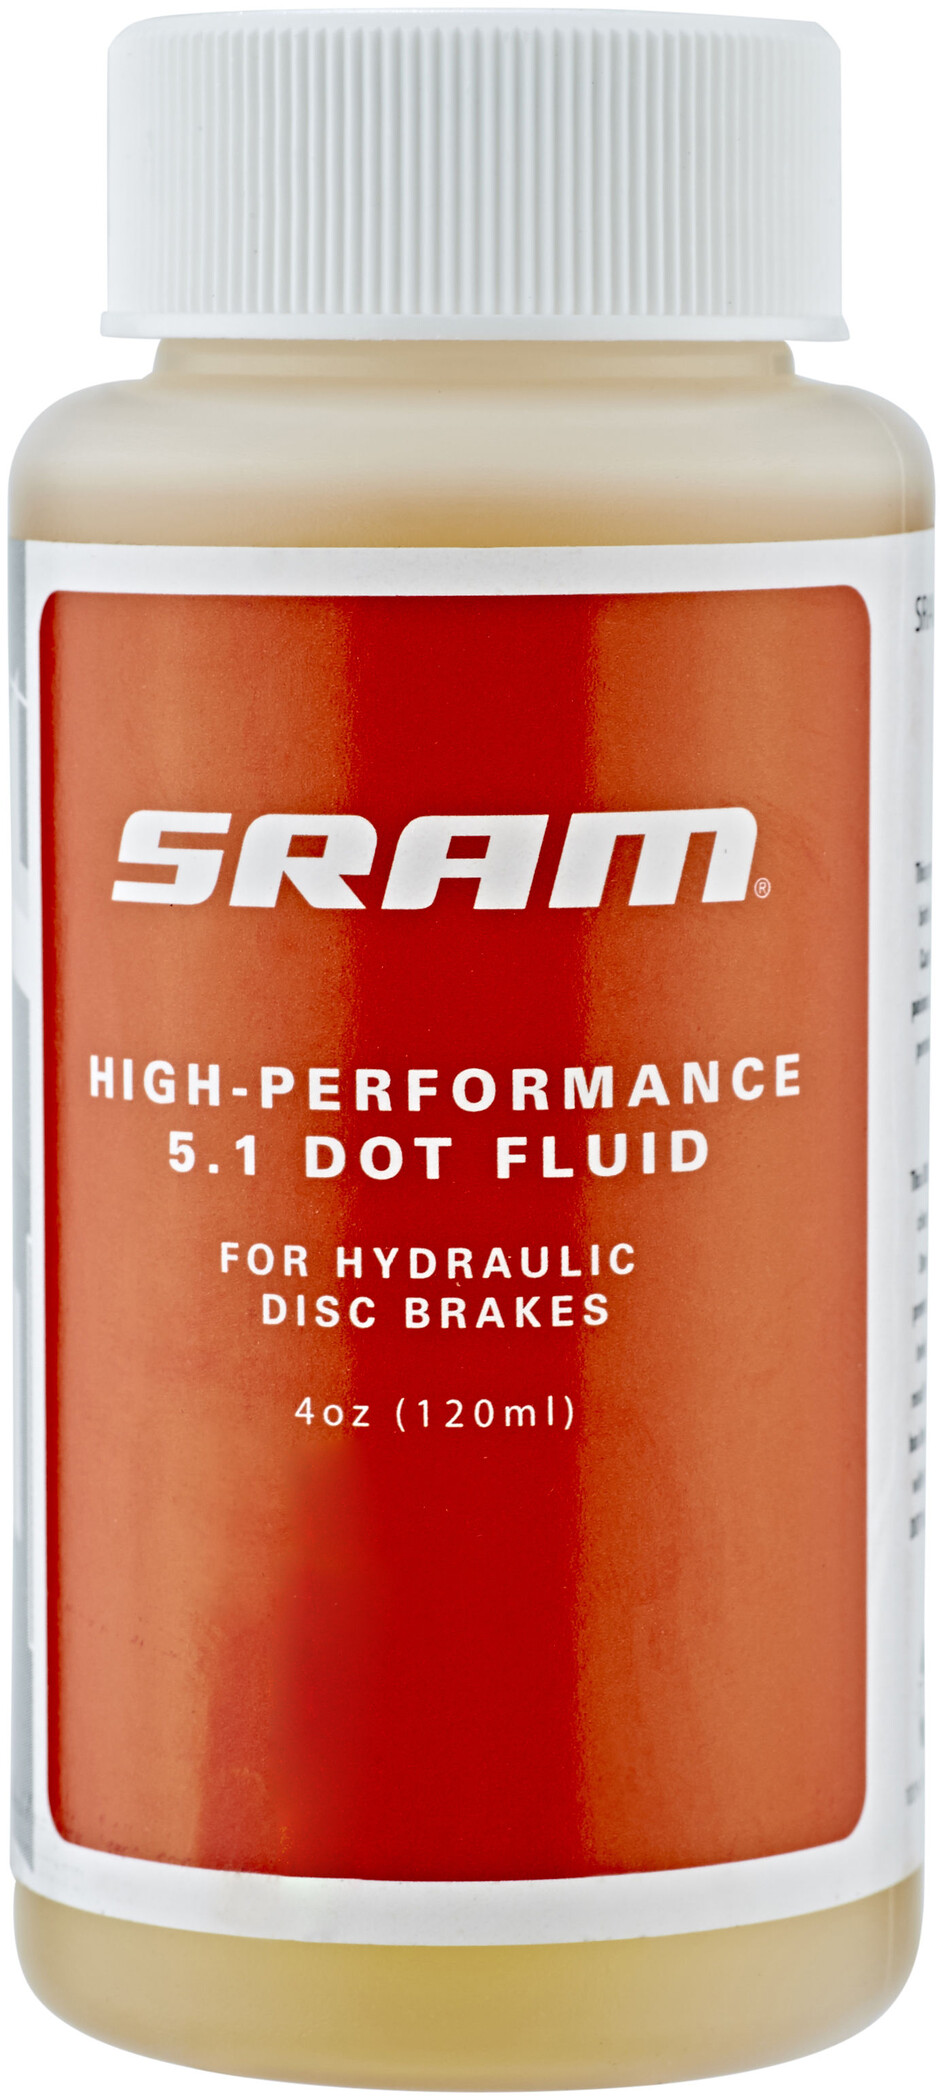 SRAM Hydraulic Disc Brake Oil 115ml DOT 5.1